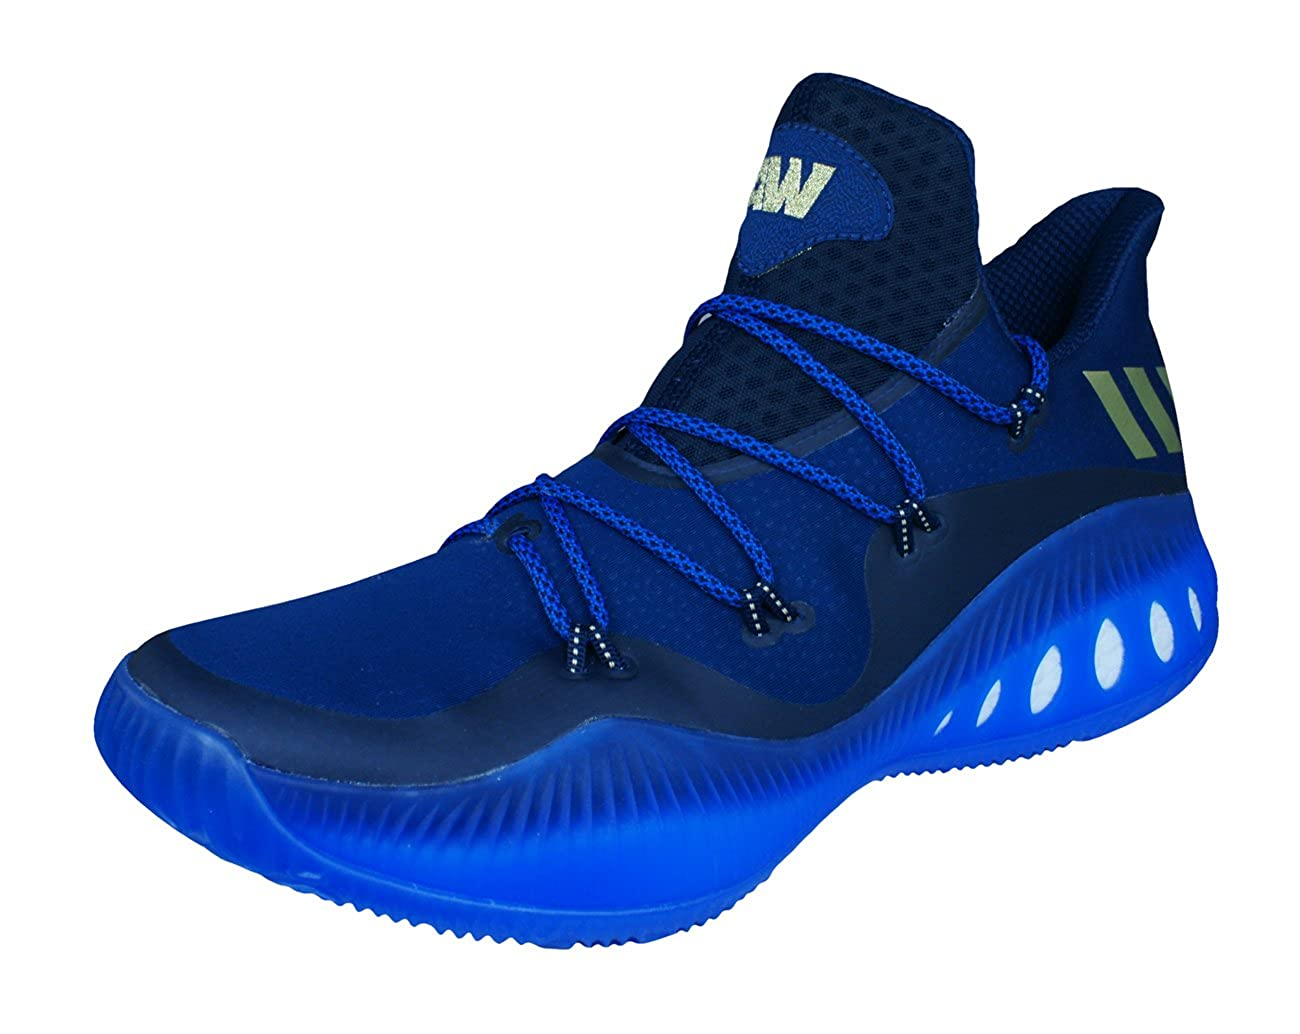 [ADIDAS] Crazy Explosive Low Mens Basketball Sneakers/Shoes-Blue-34.5 B06Y25VWVD